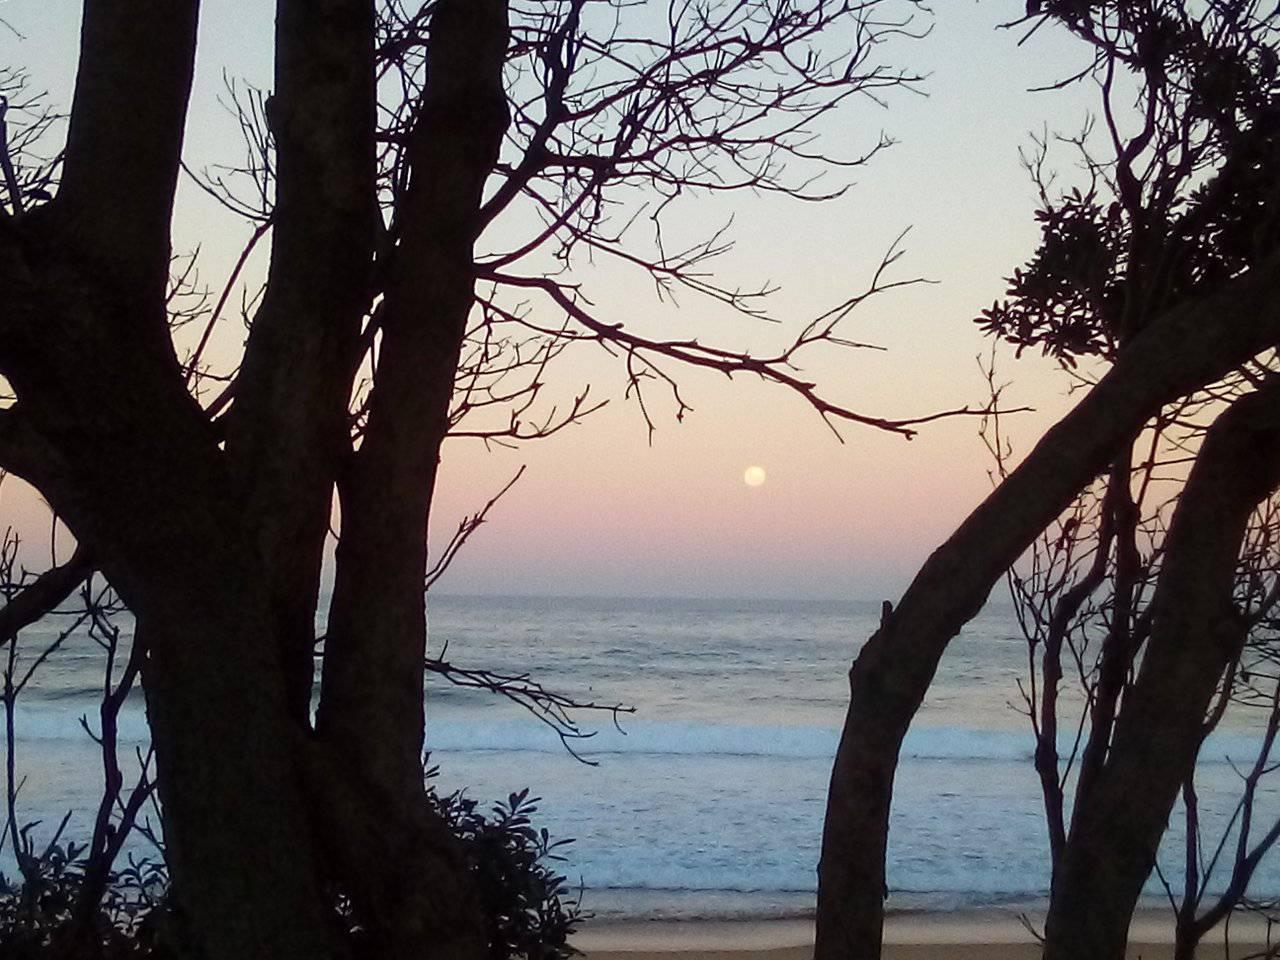 MacMasters Beach Full moon